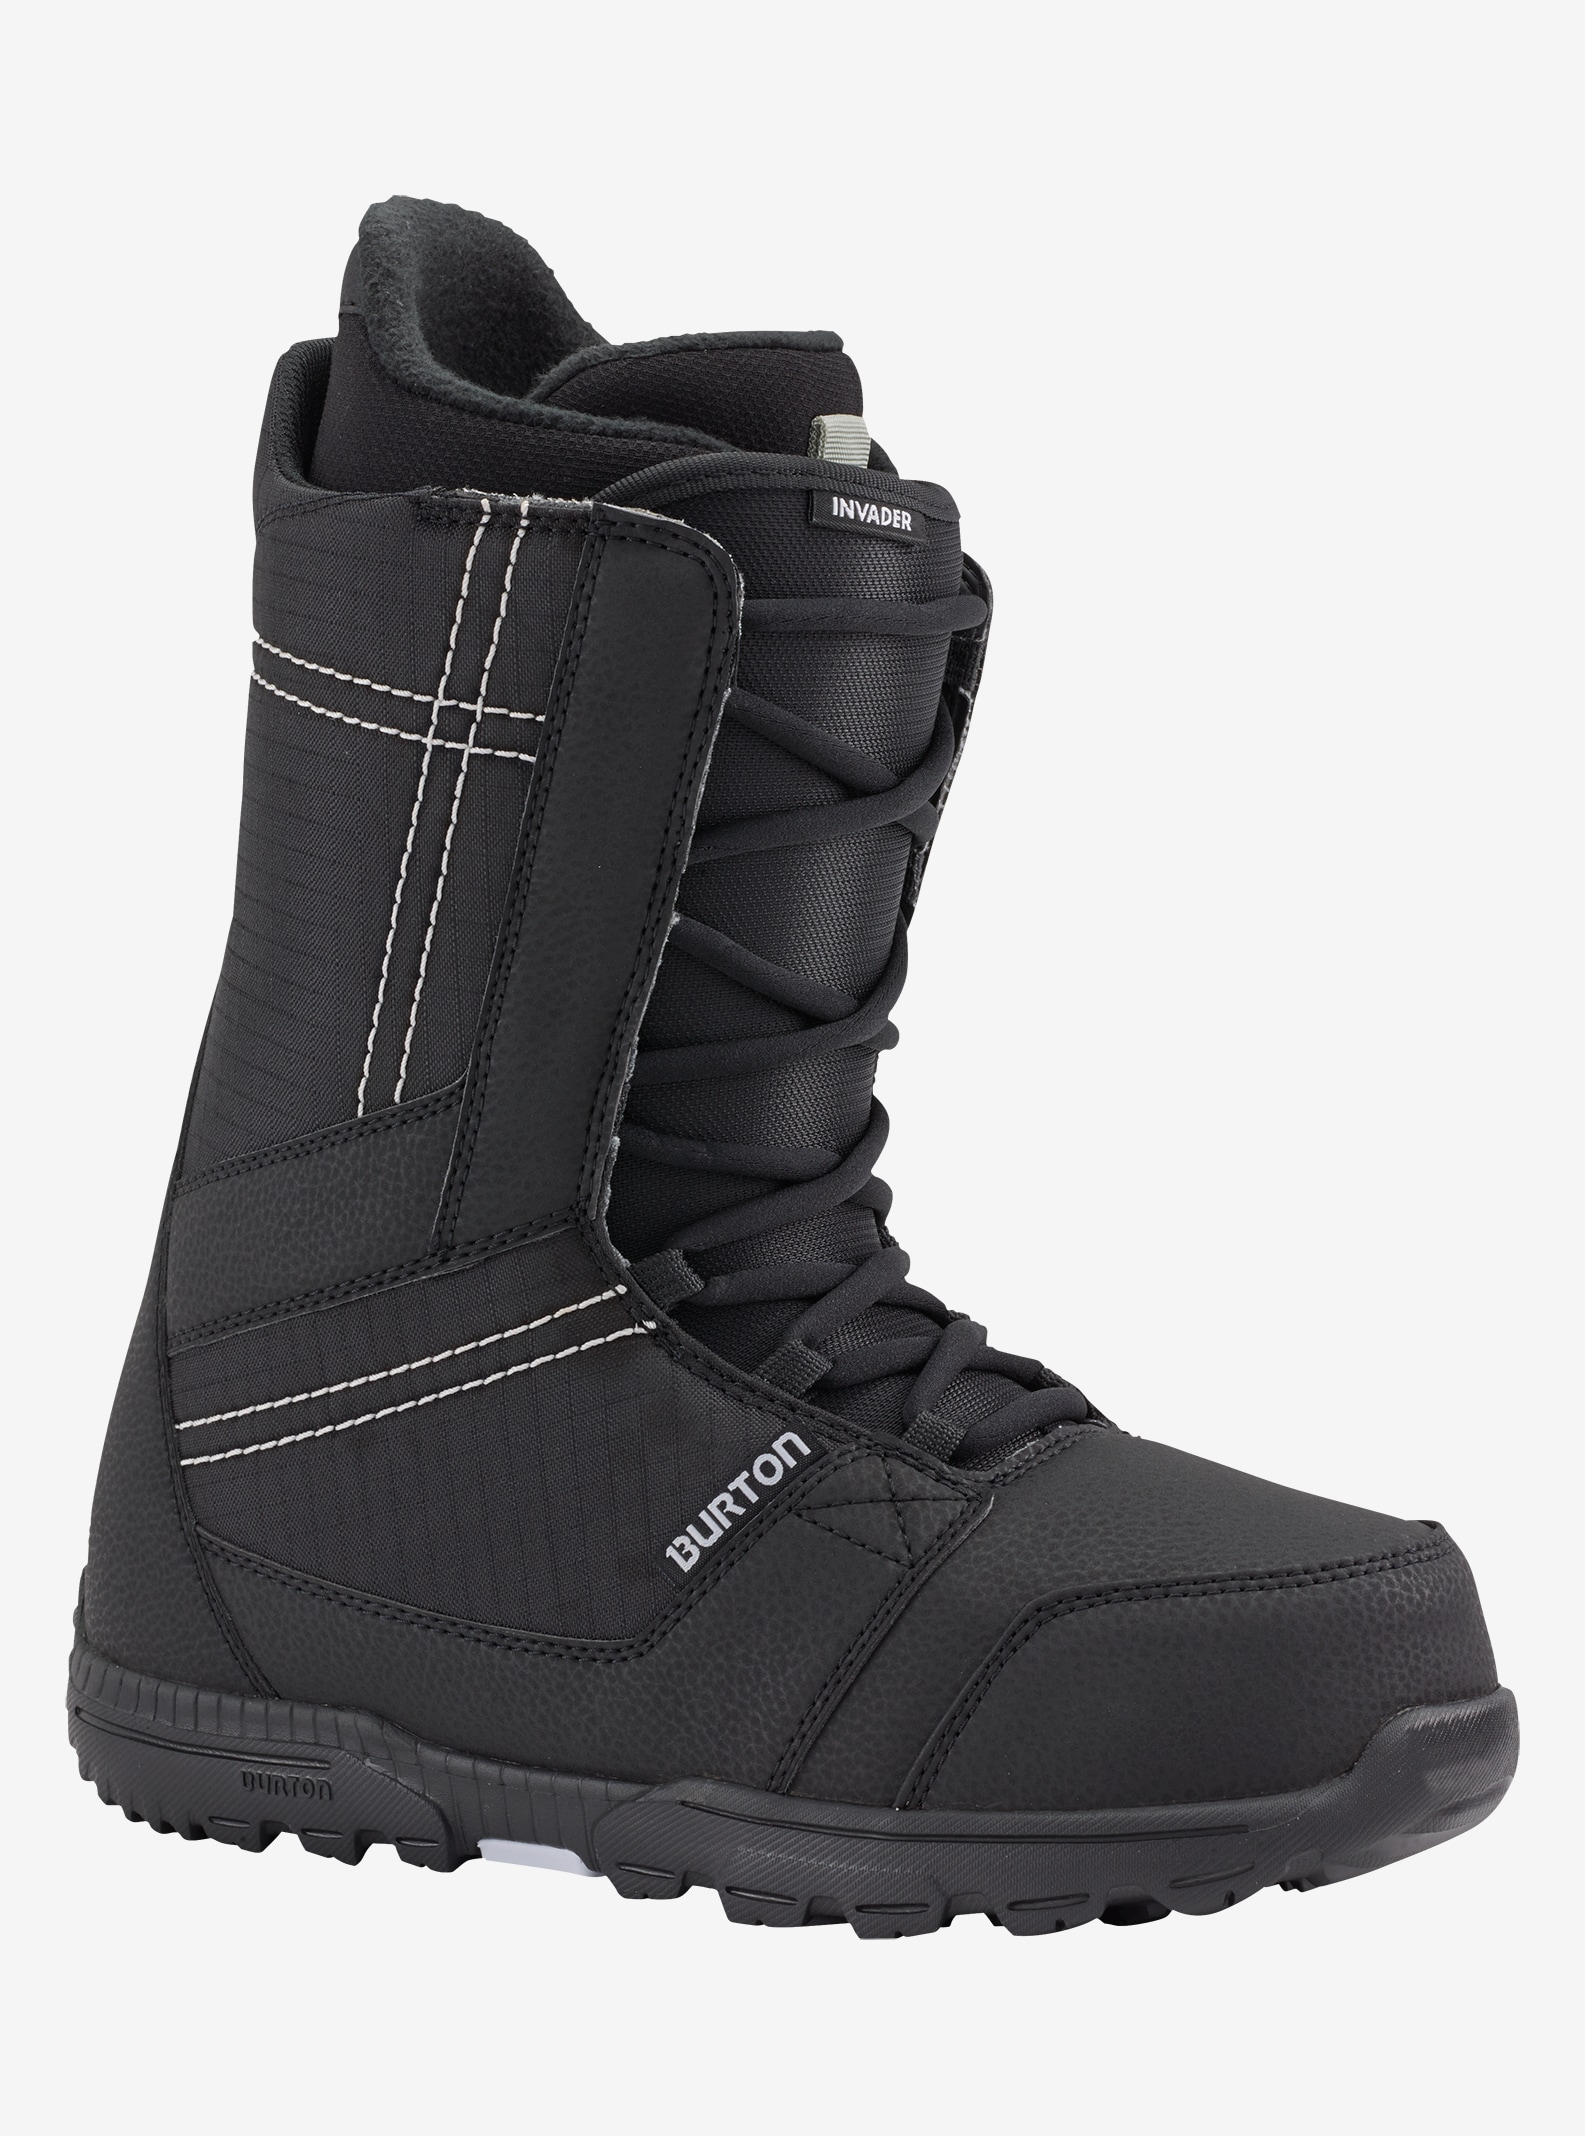 Men's Burton Invader Snowboard Boot shown in Black